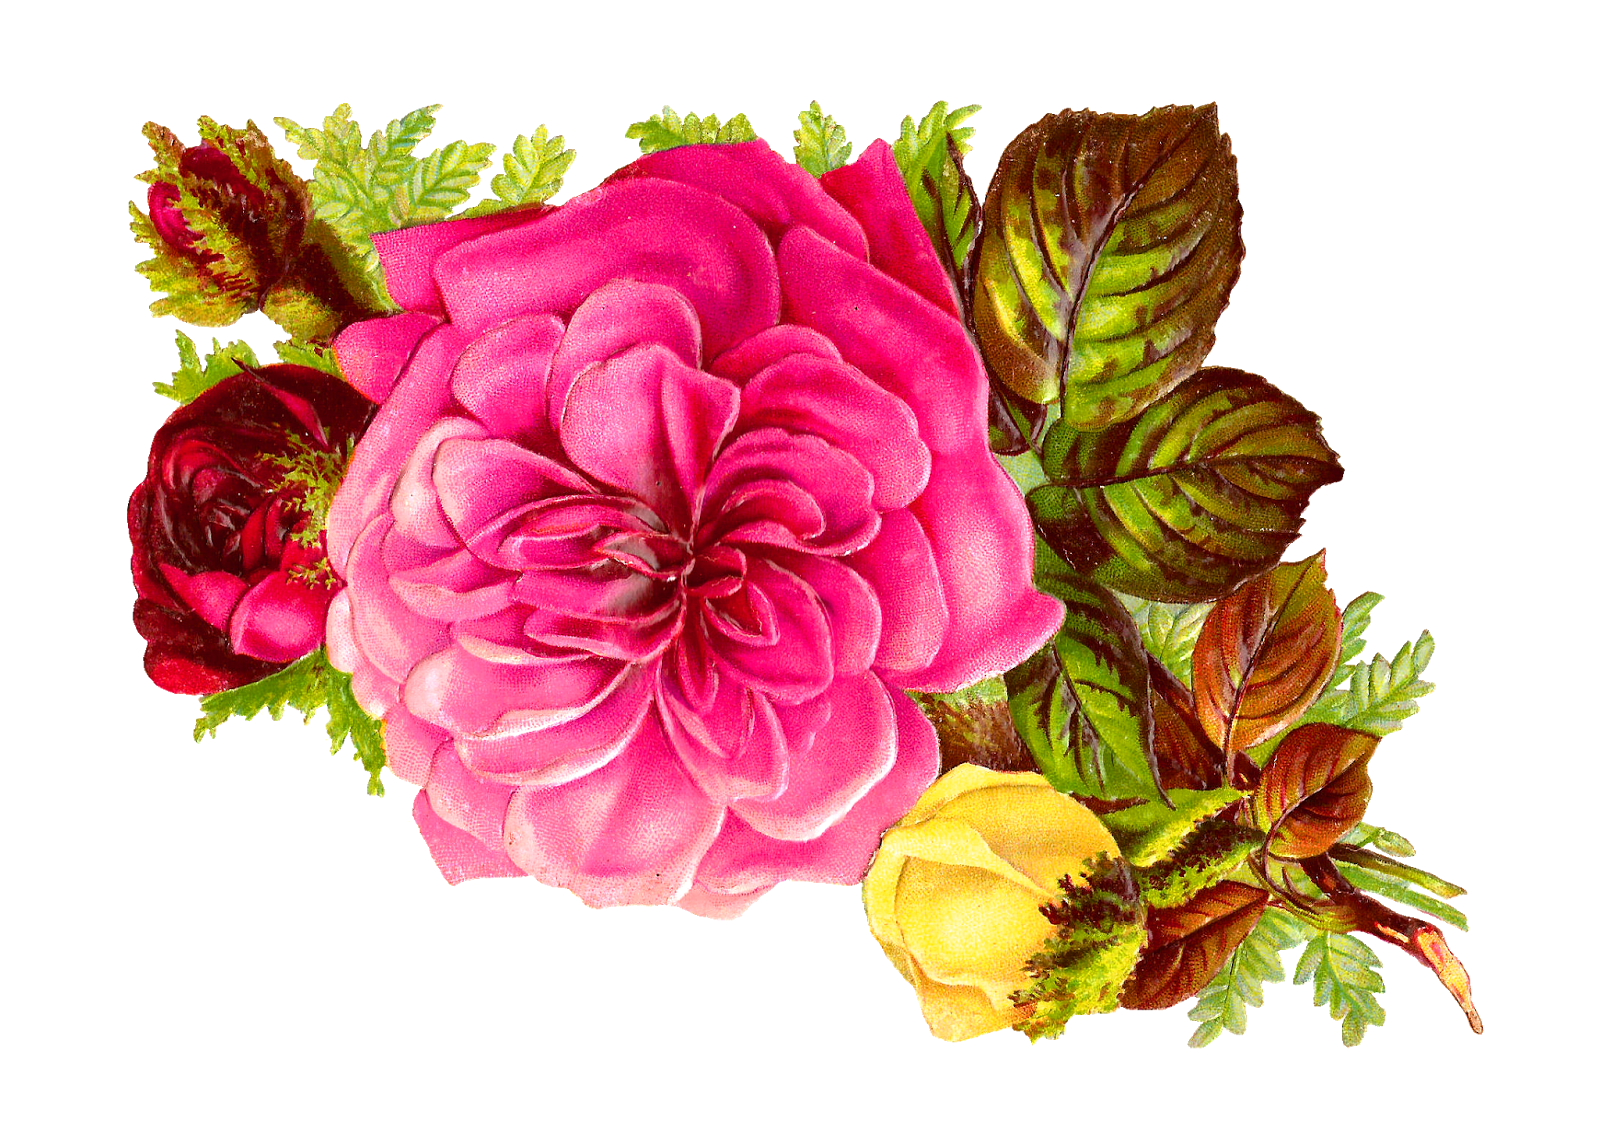 Antique images rose bouquet clip art of pink red and for Images of bouquets of roses